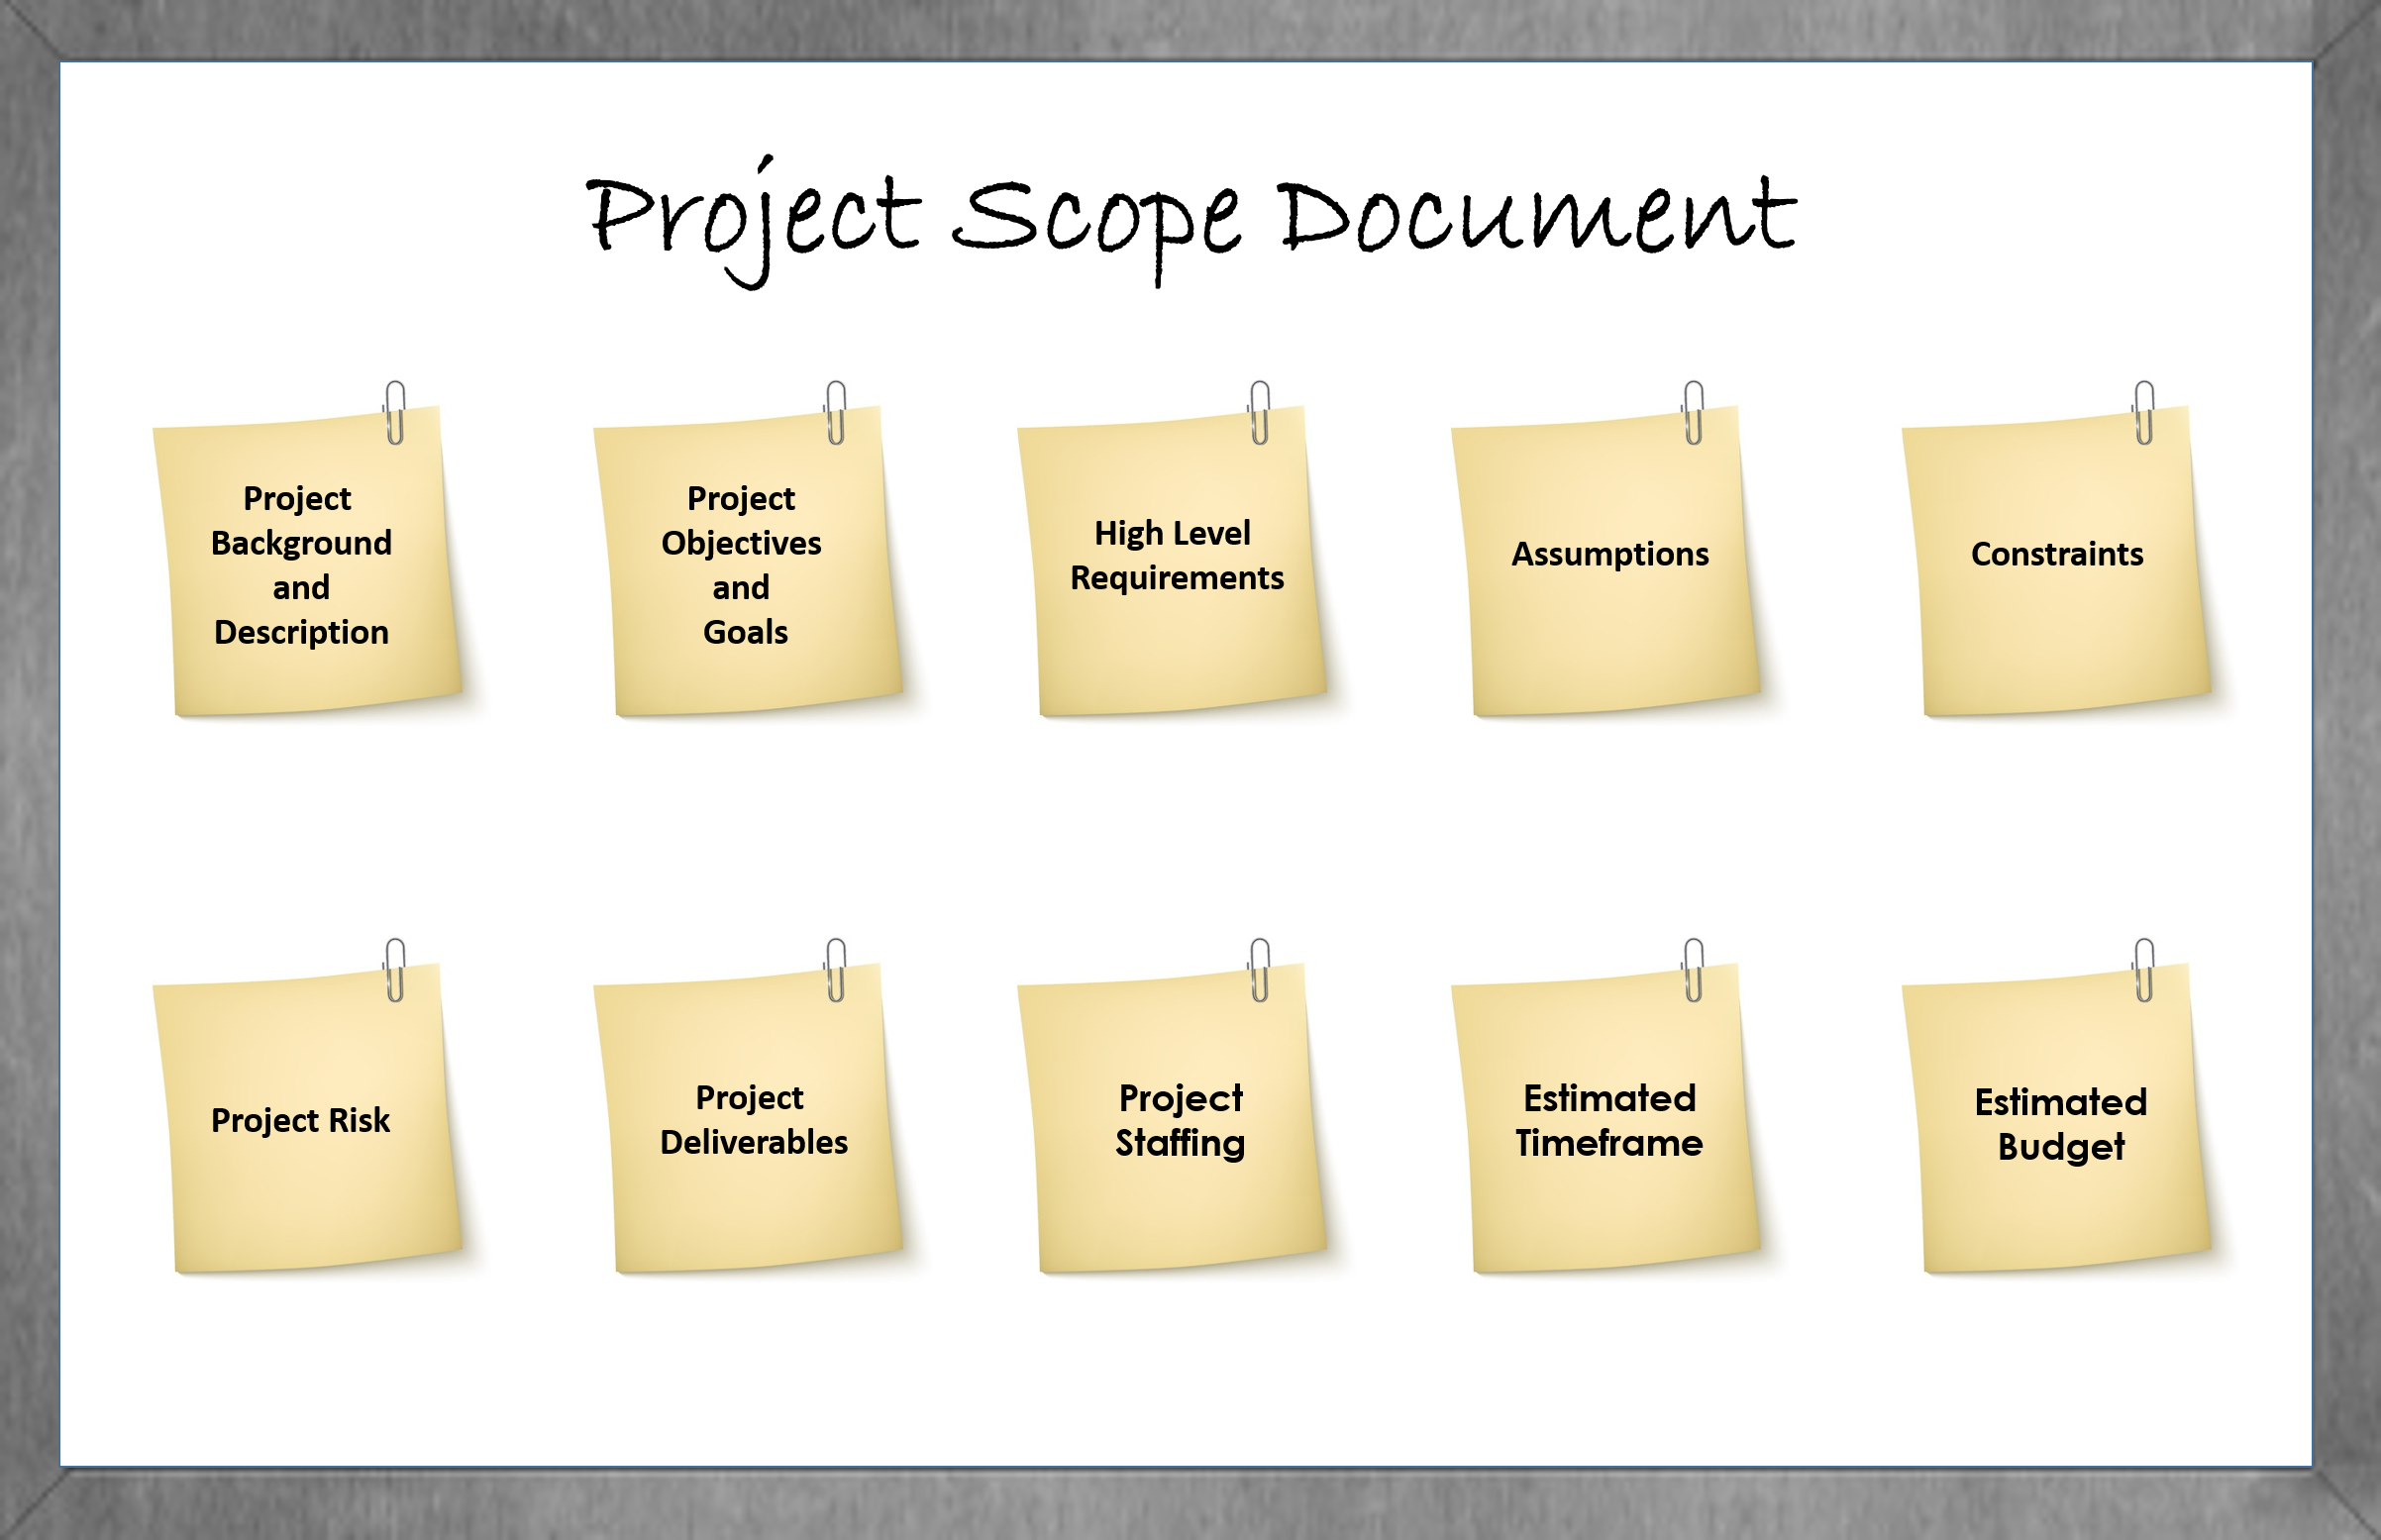 Sample Project Scope Document Cheat Sheet By Davidpol Download